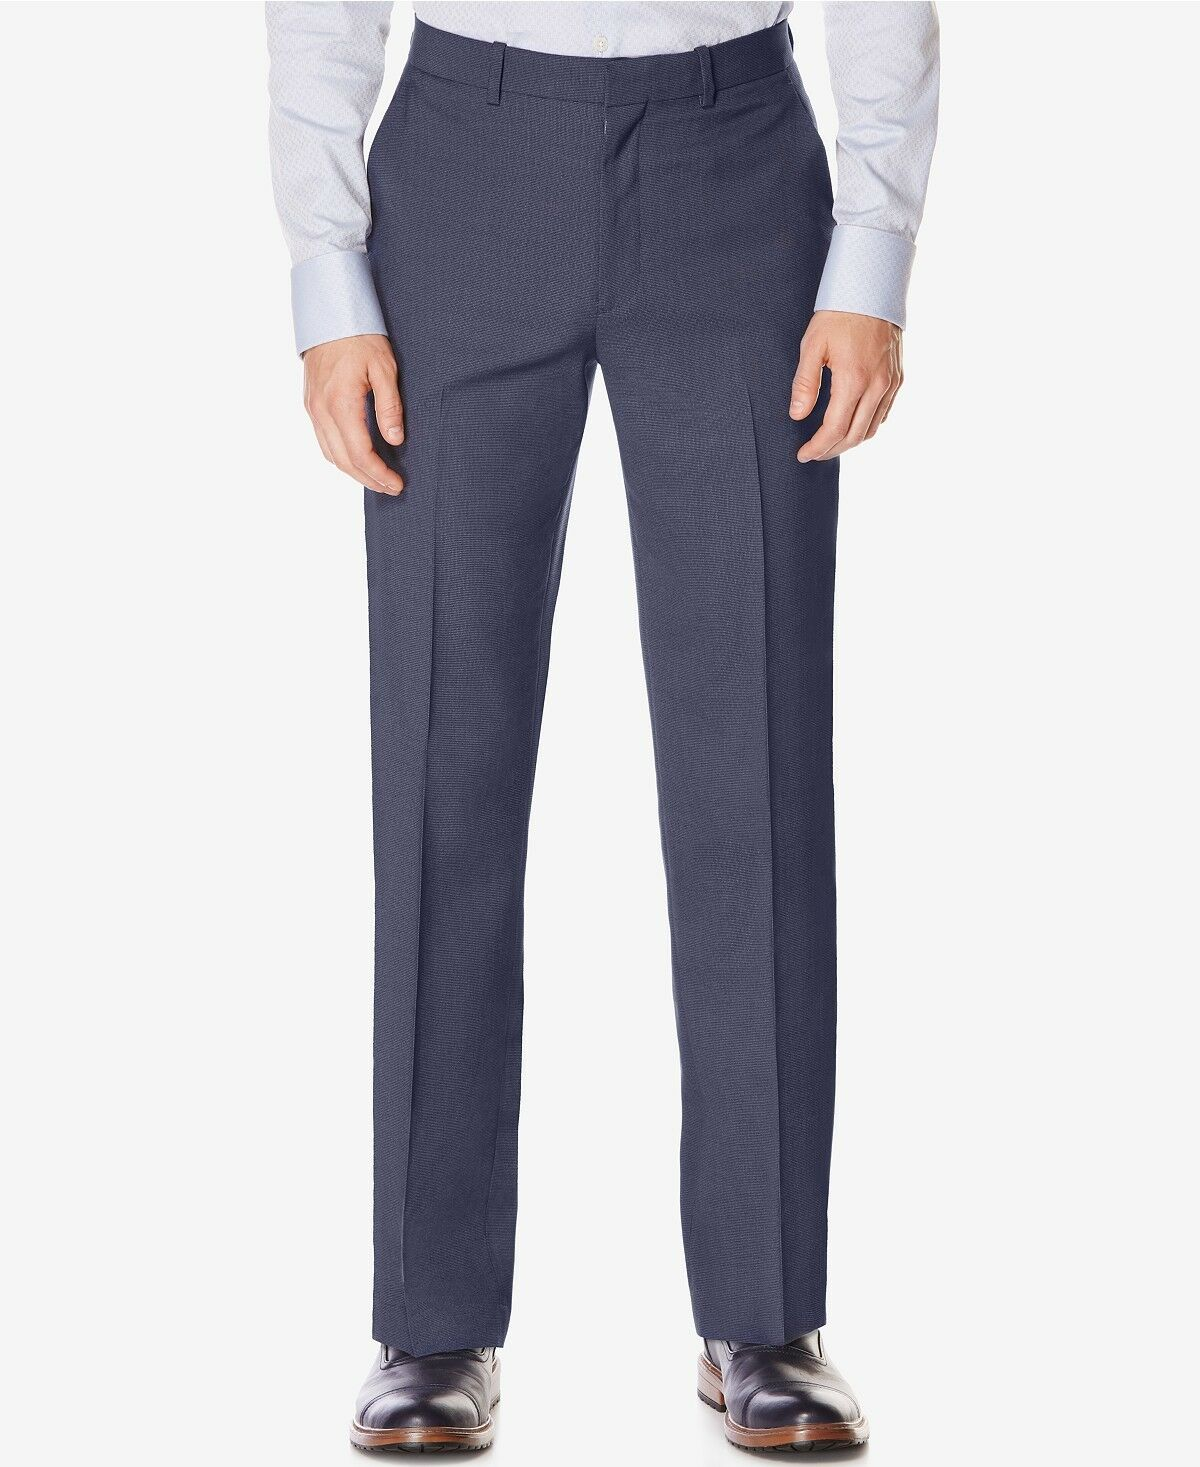 PERRY ELLIS PORTFOLIO men blueE FIT FLAT FRONT SUIT DRESS PANTS 34 W 29 L